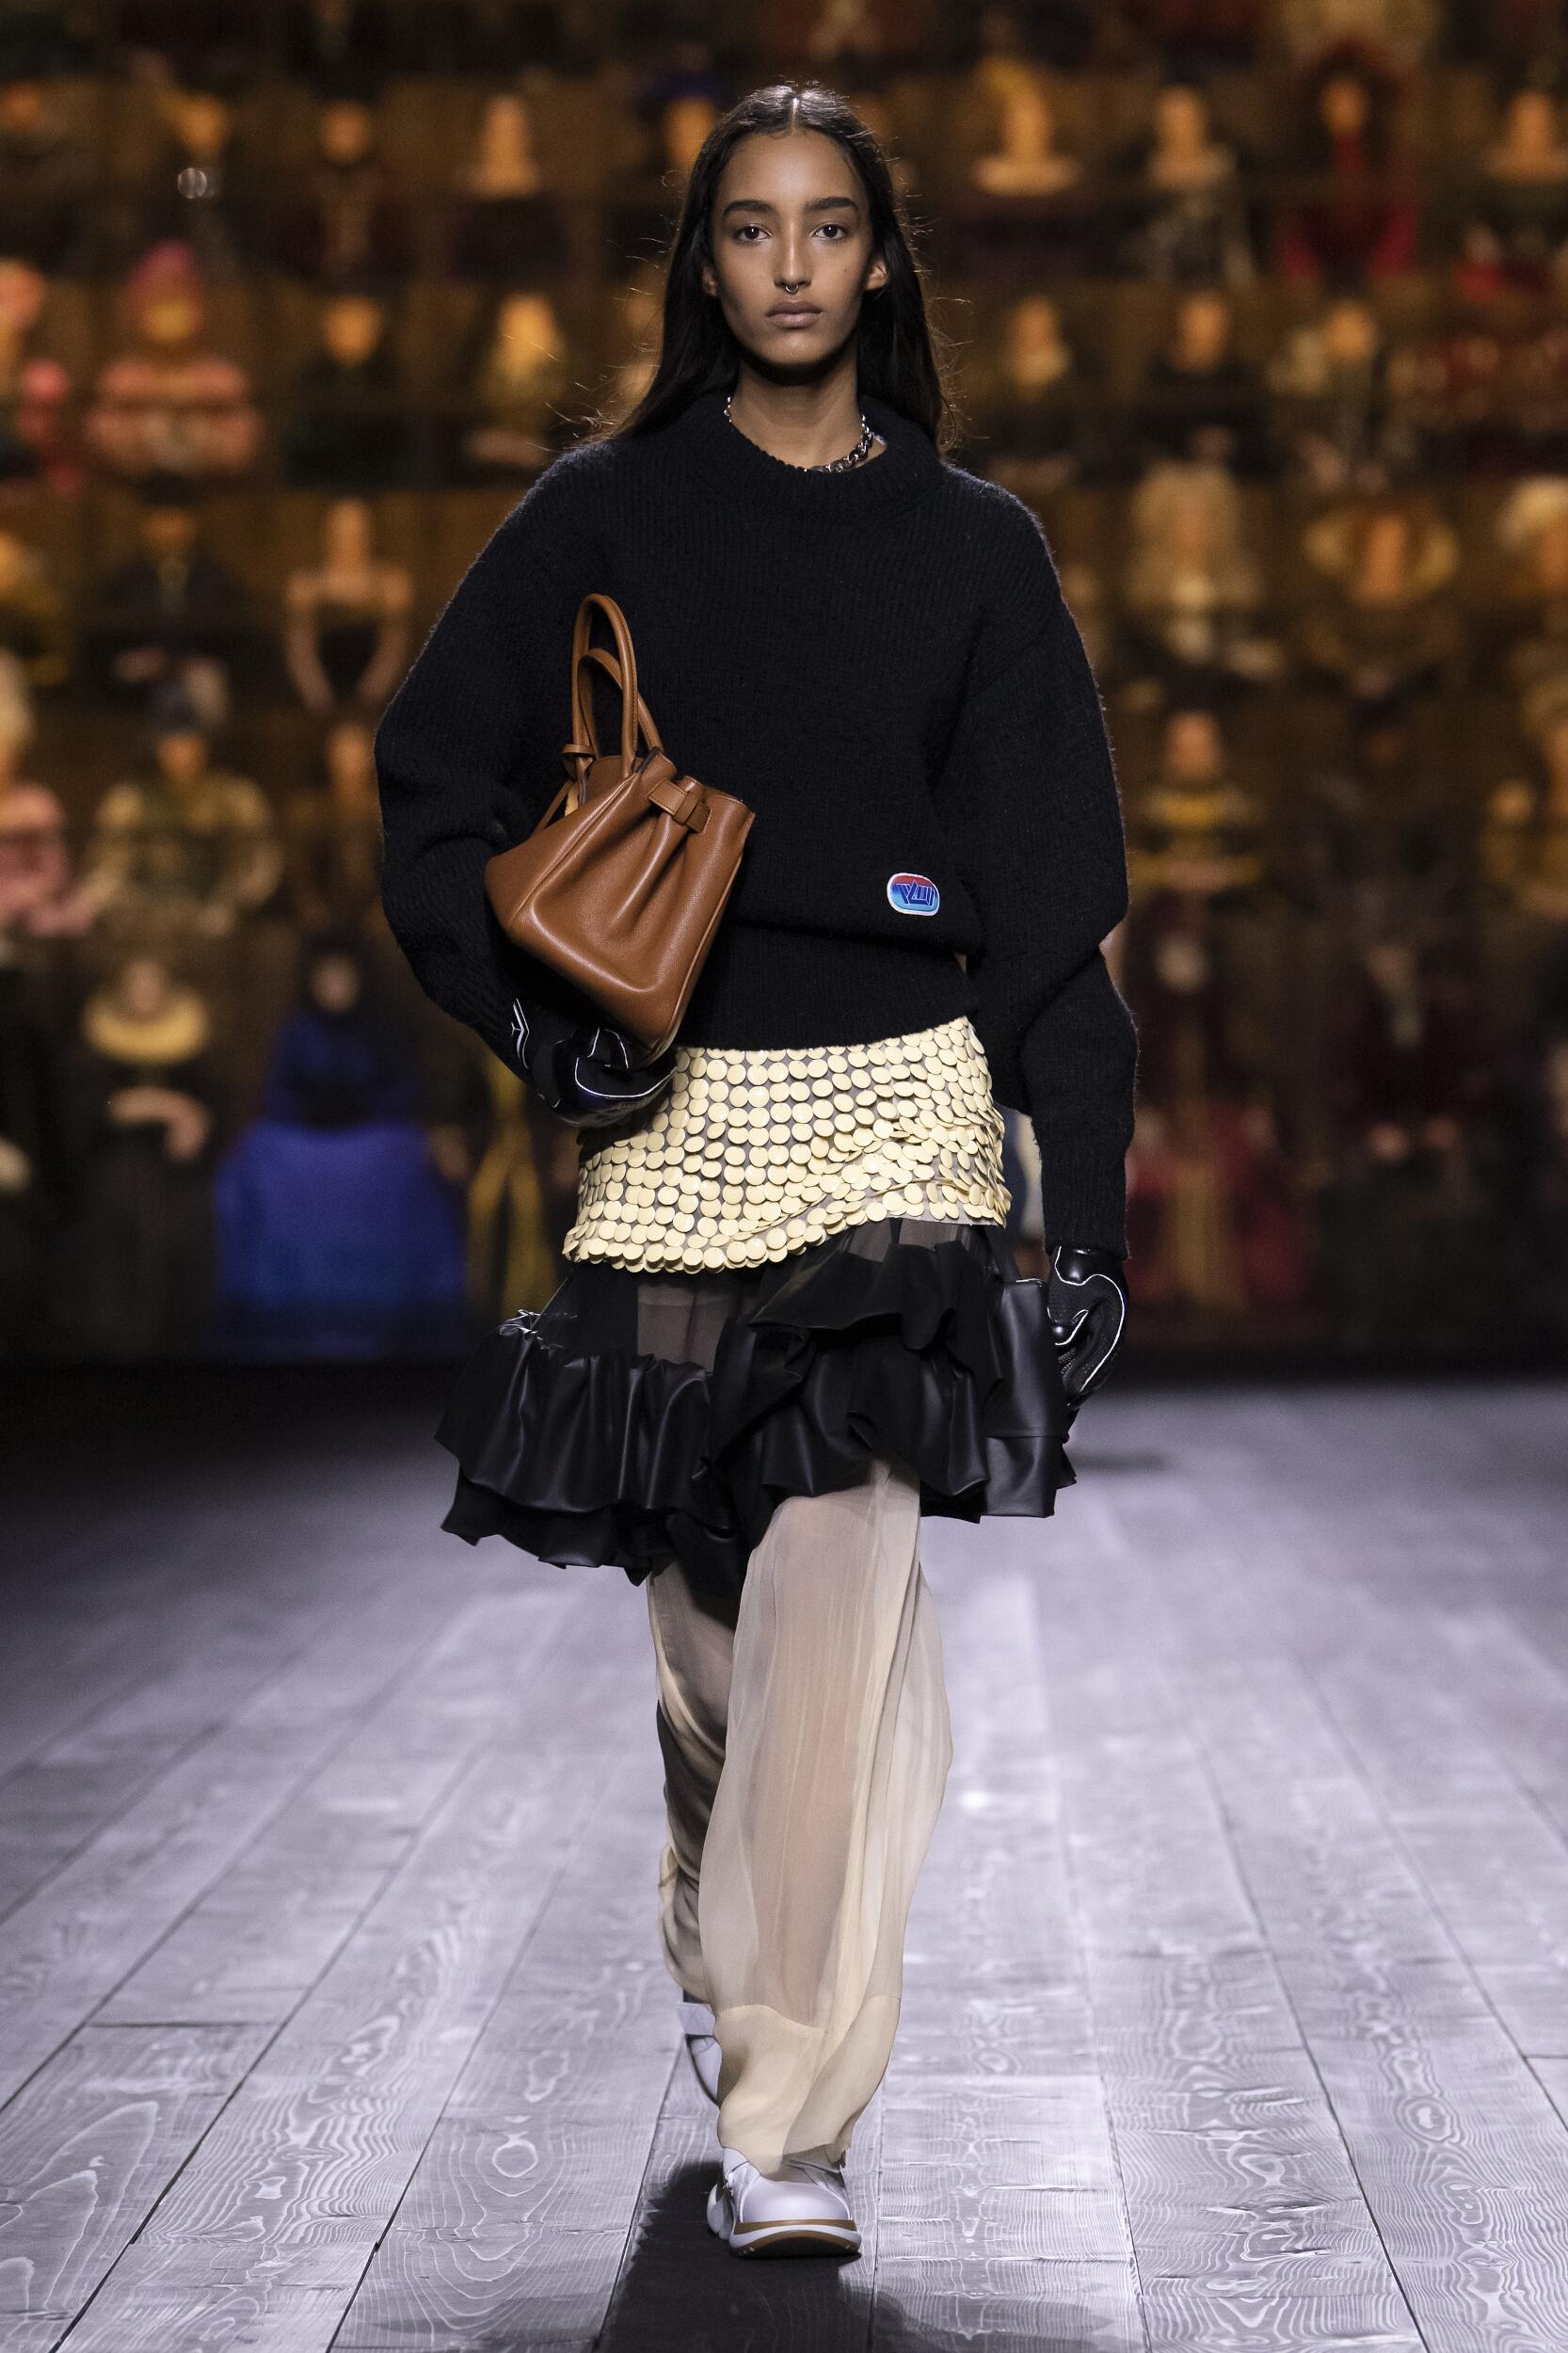 Fashion Model Louis Vuitton Catwalk